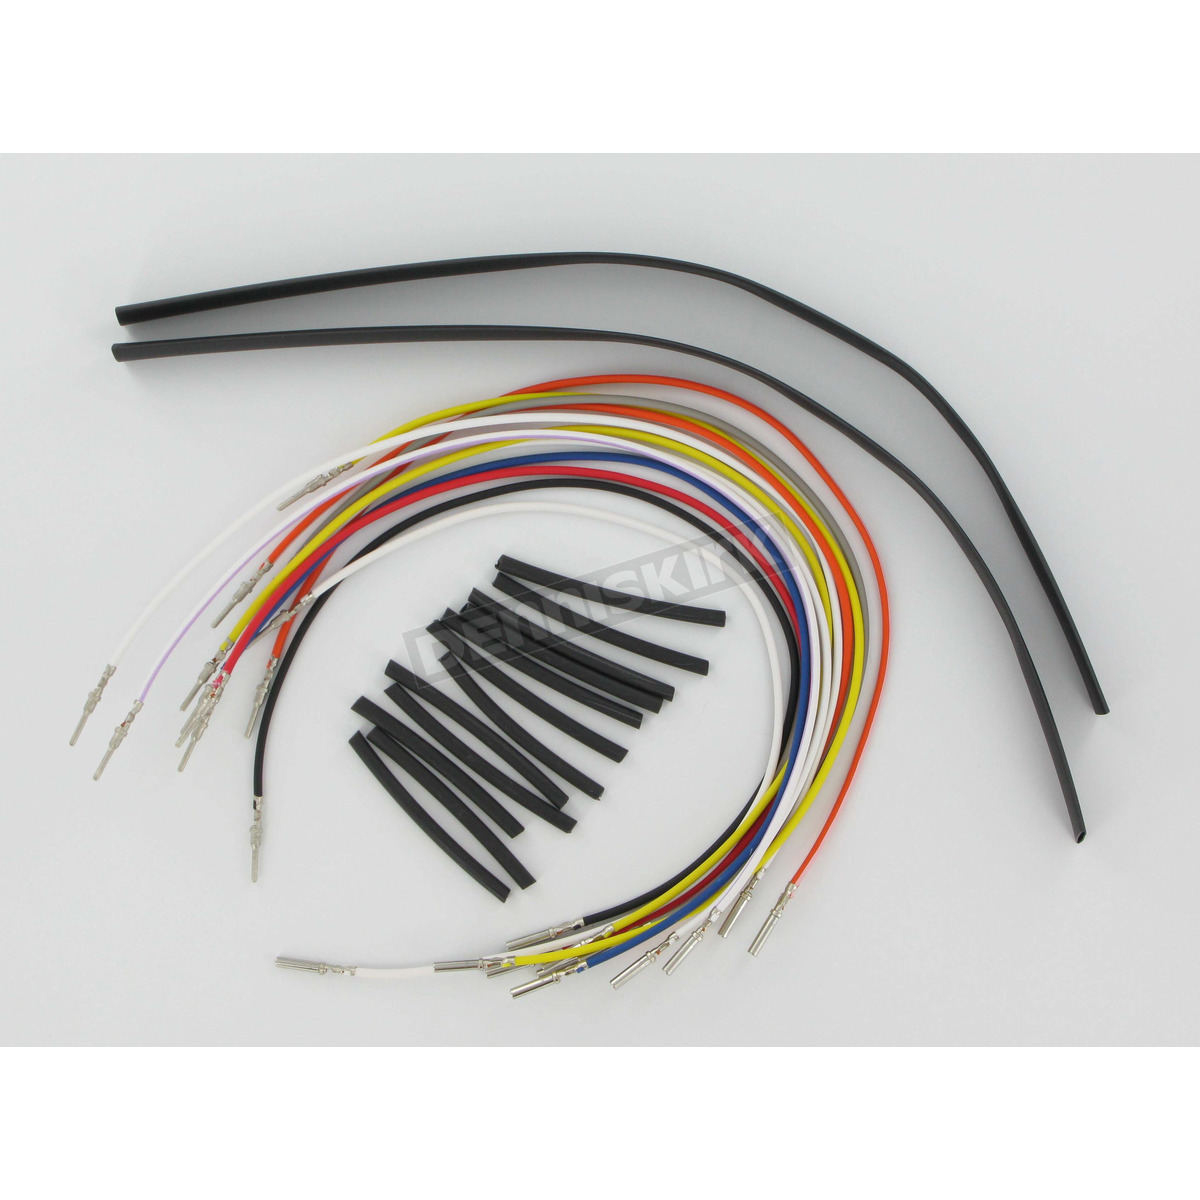 dk211741 novello 4 in handlebar wire harness extension kit nil wh4 harley davidson wiring harness extension at n-0.co